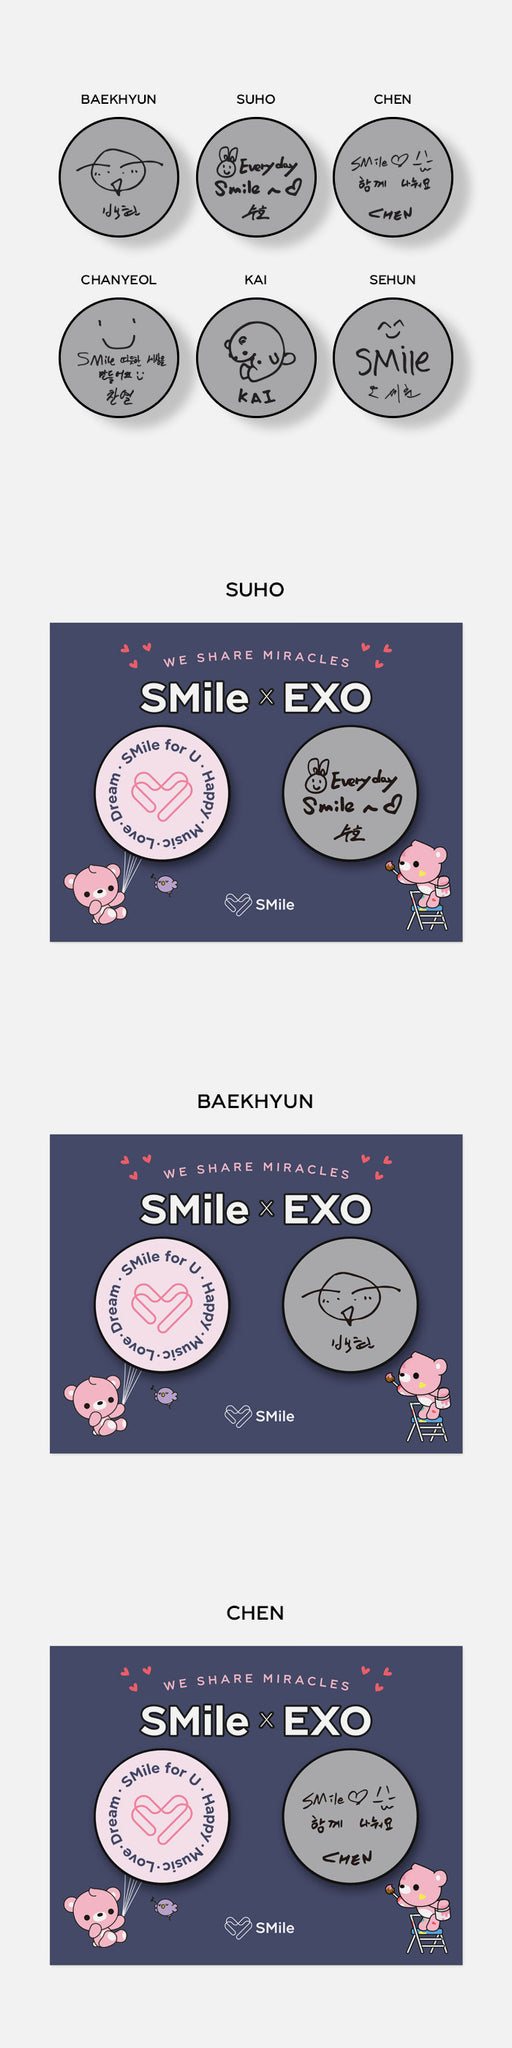 EXO SMile for U Goods - GRIP TOK